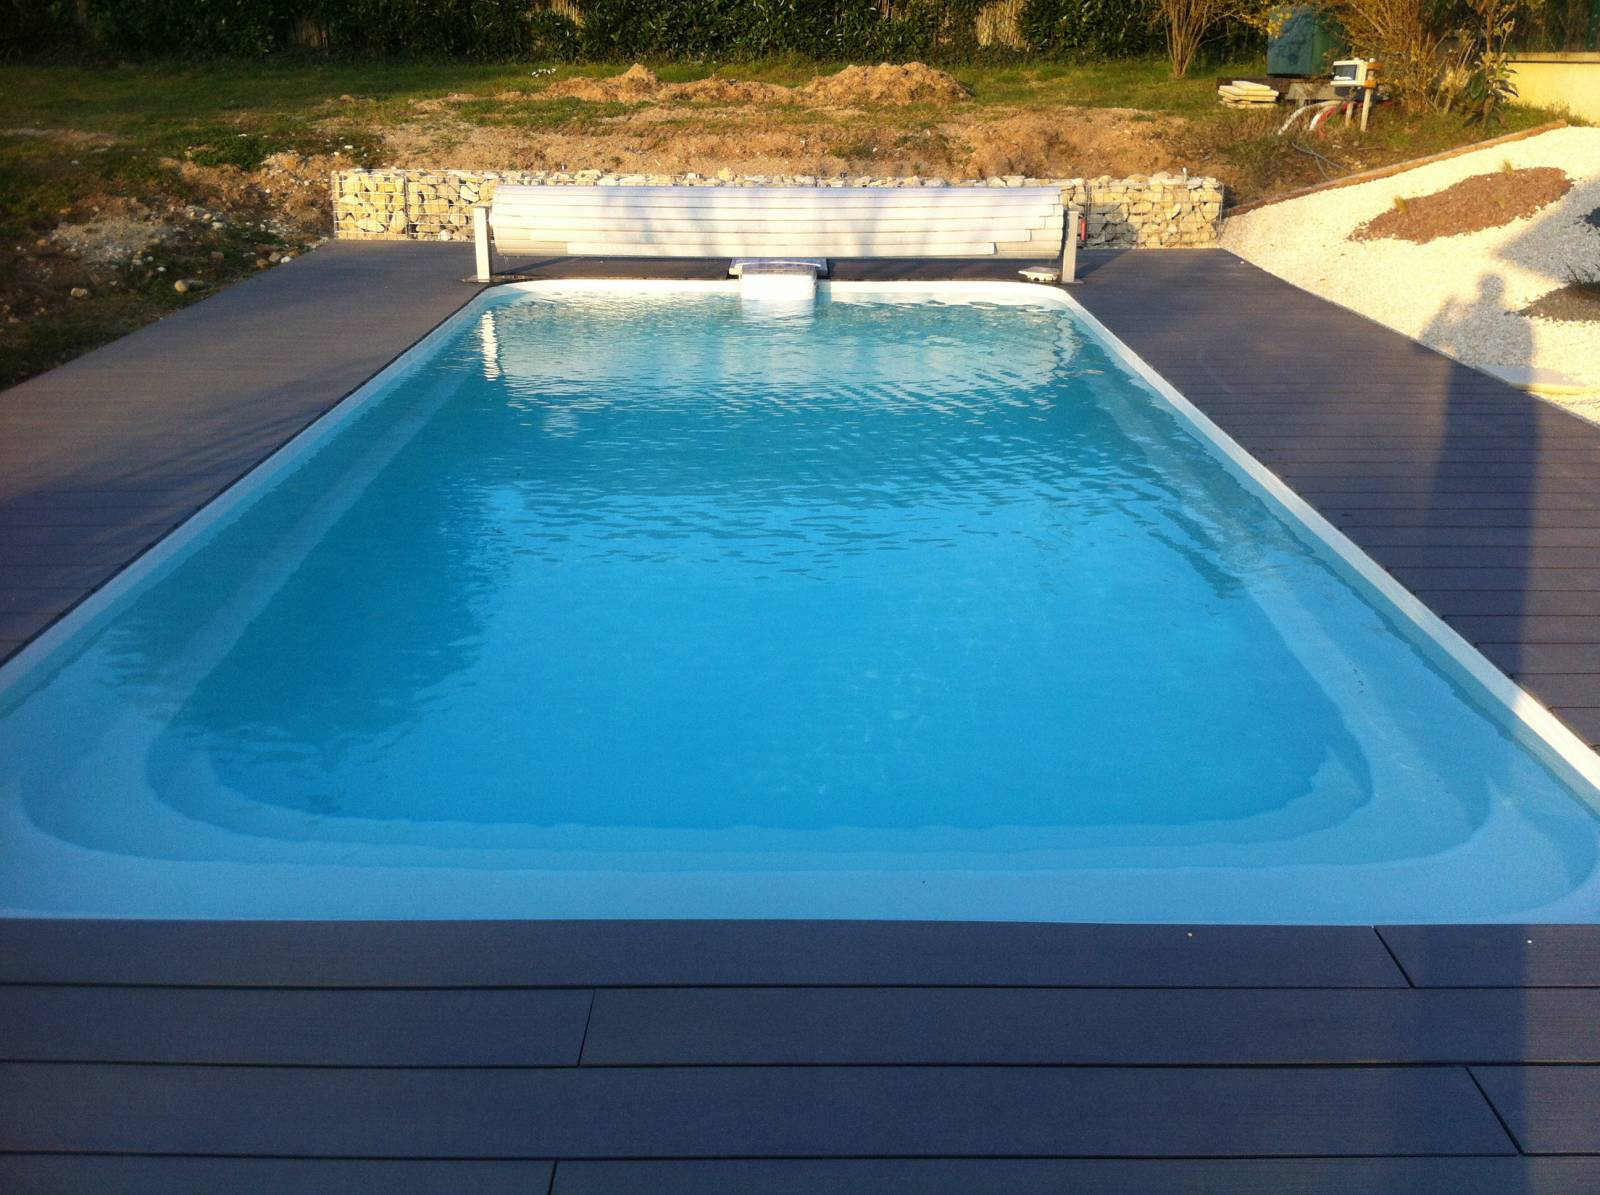 Piscine coque polyester rectangulaire 7x3 pour filtration for Piscine 7x3